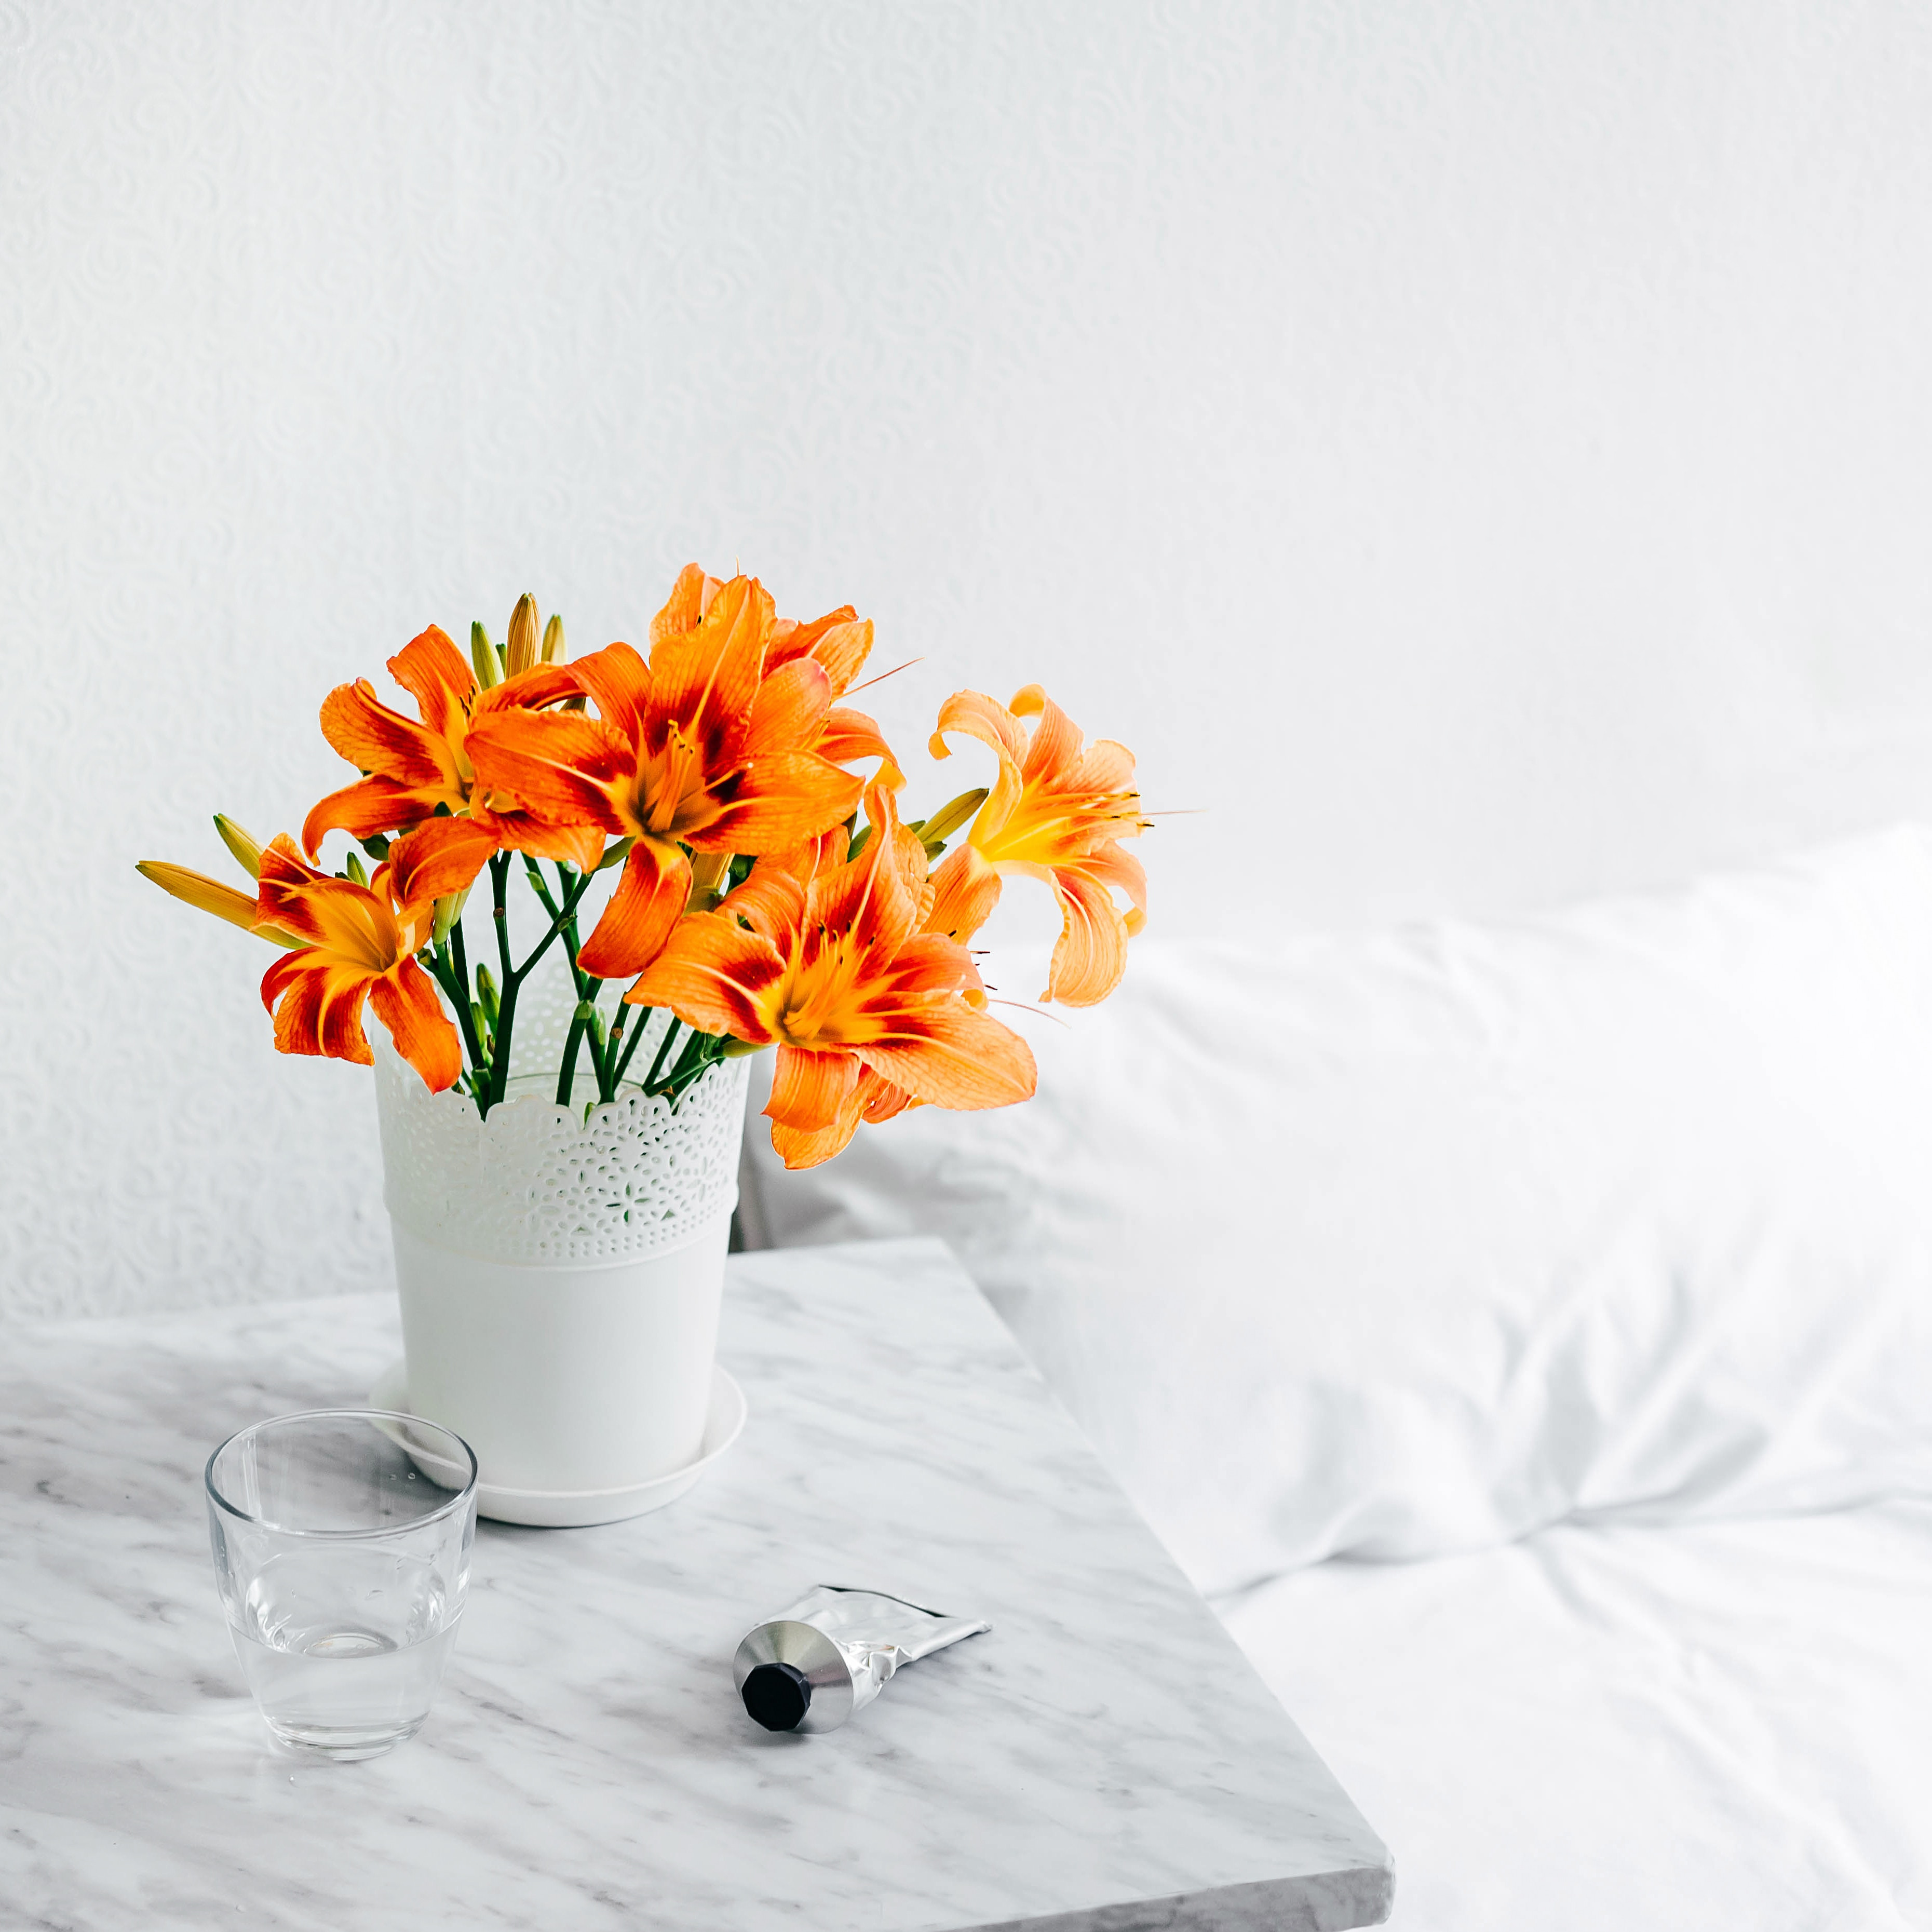 Symbolisms Behind Different Flowers